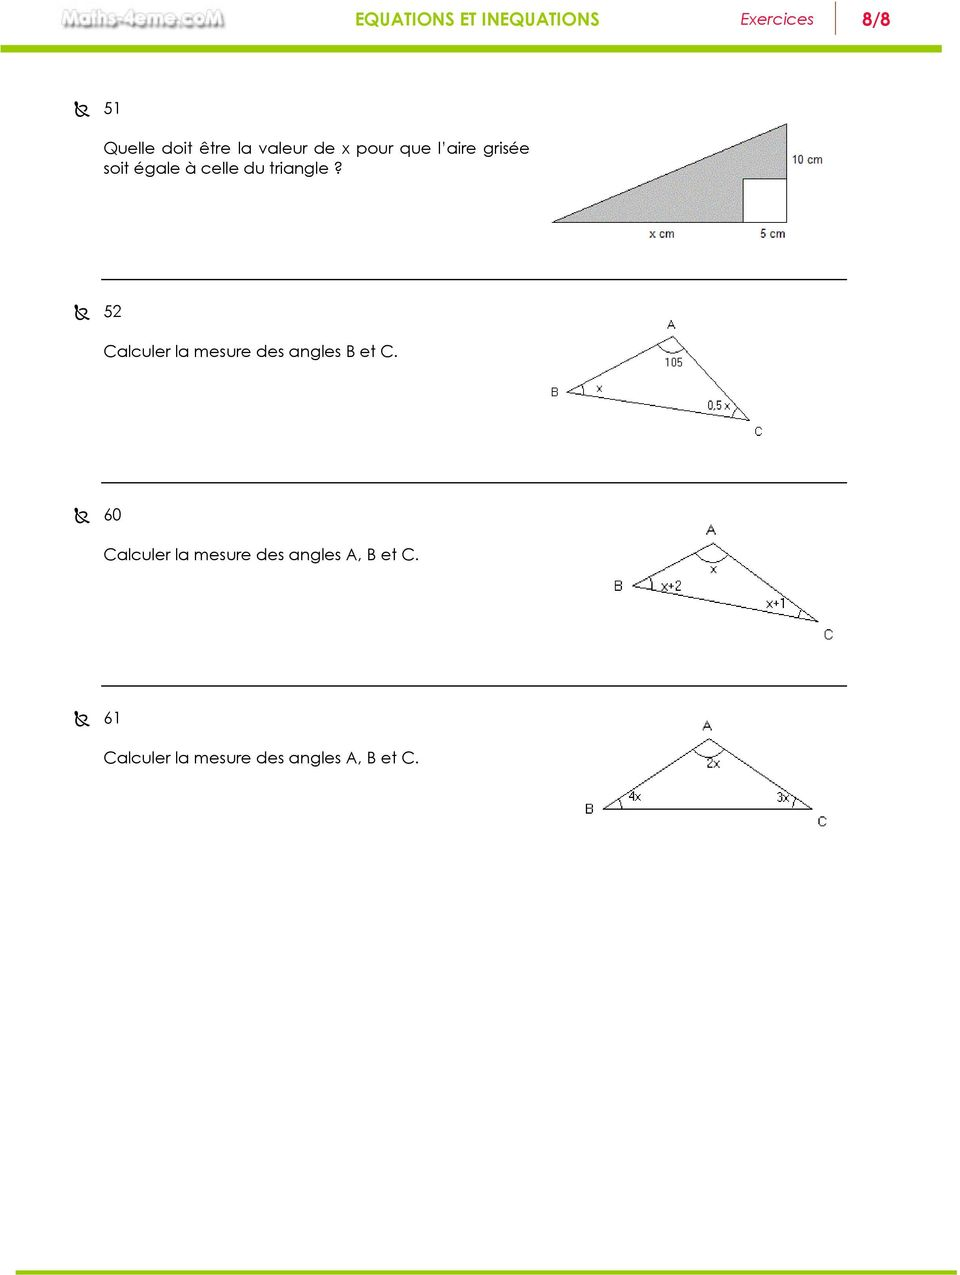 triangle? 5 Calculer la mesure des angles B et C.